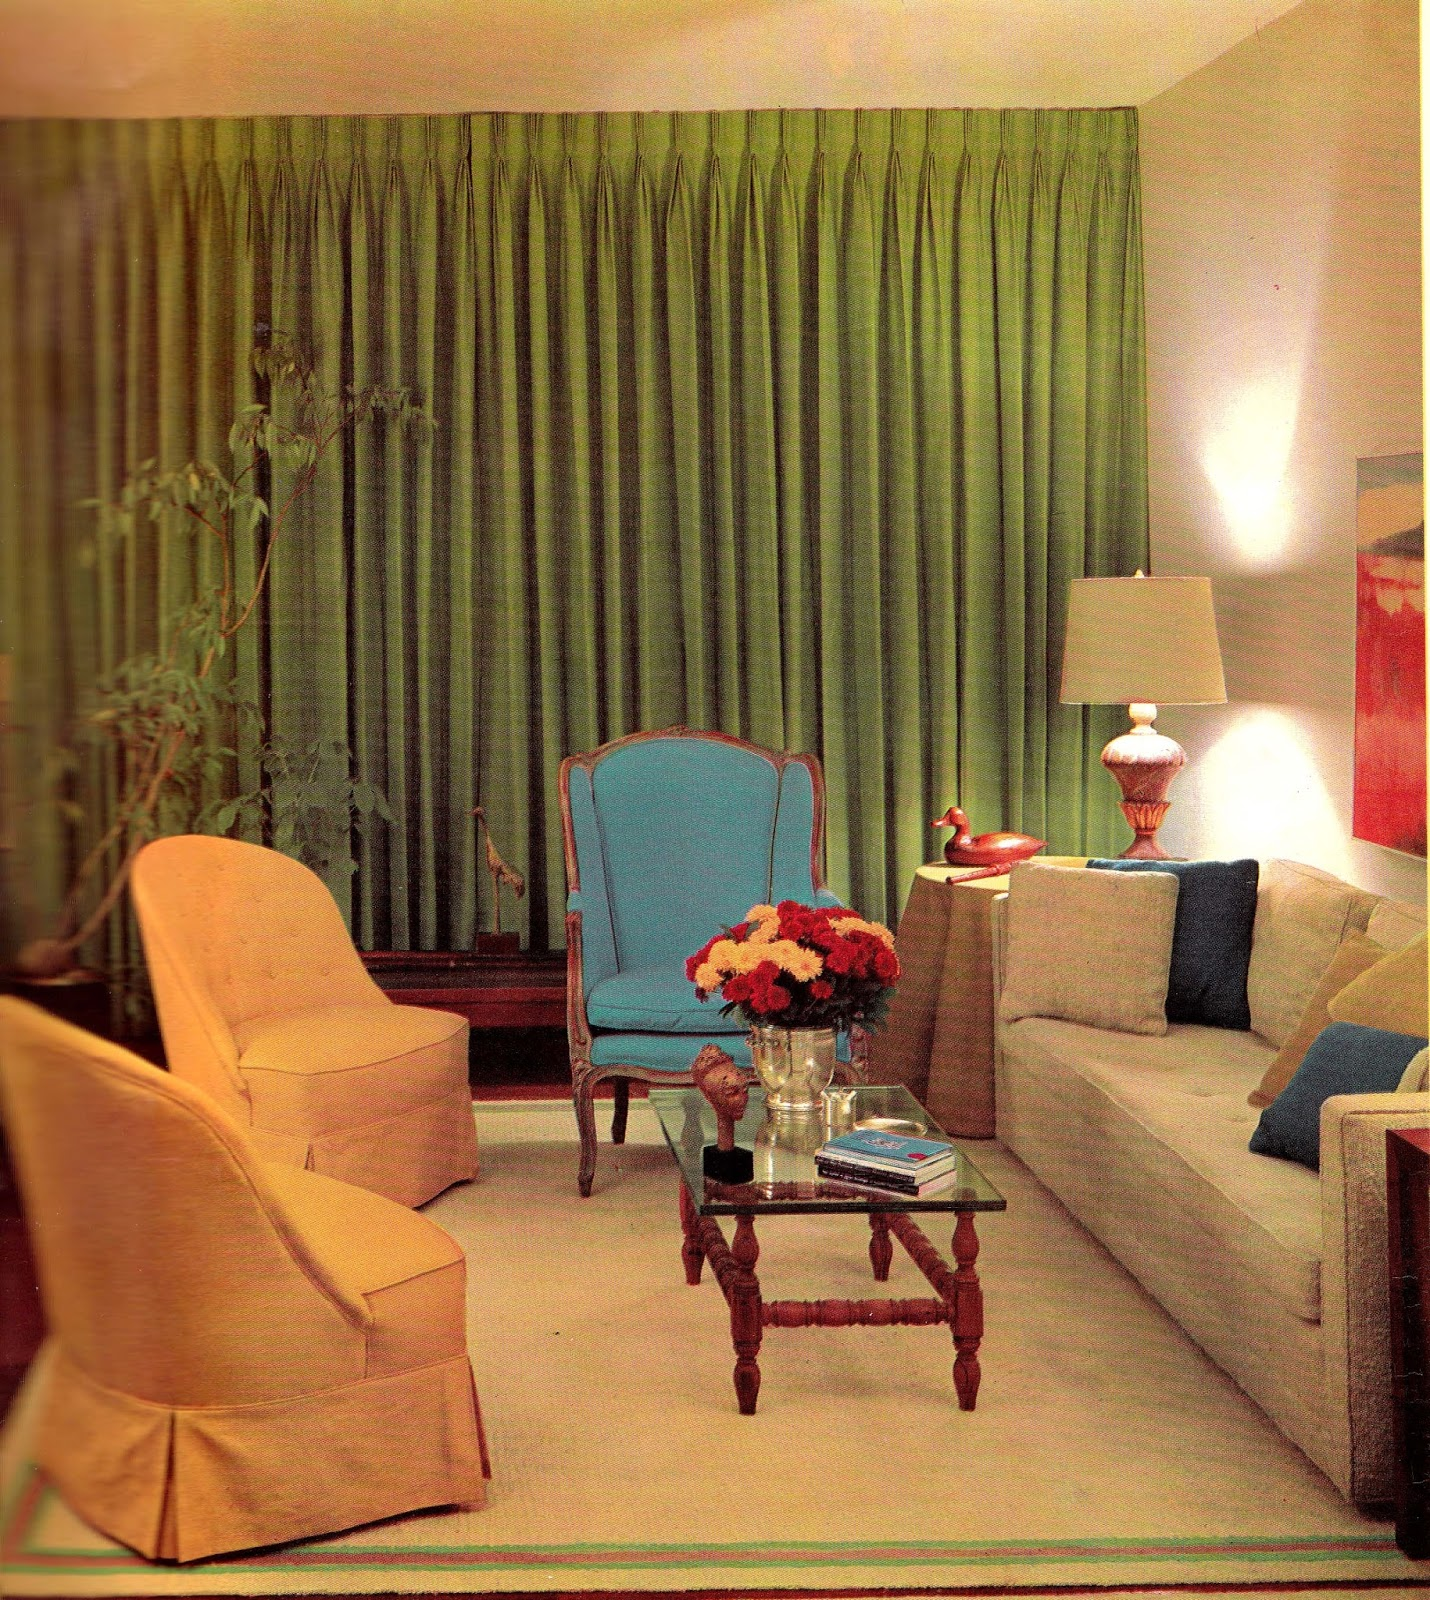 1960S Interior Design 1960S Interior Décor The Decade Of Psychedelia Gave Rise To